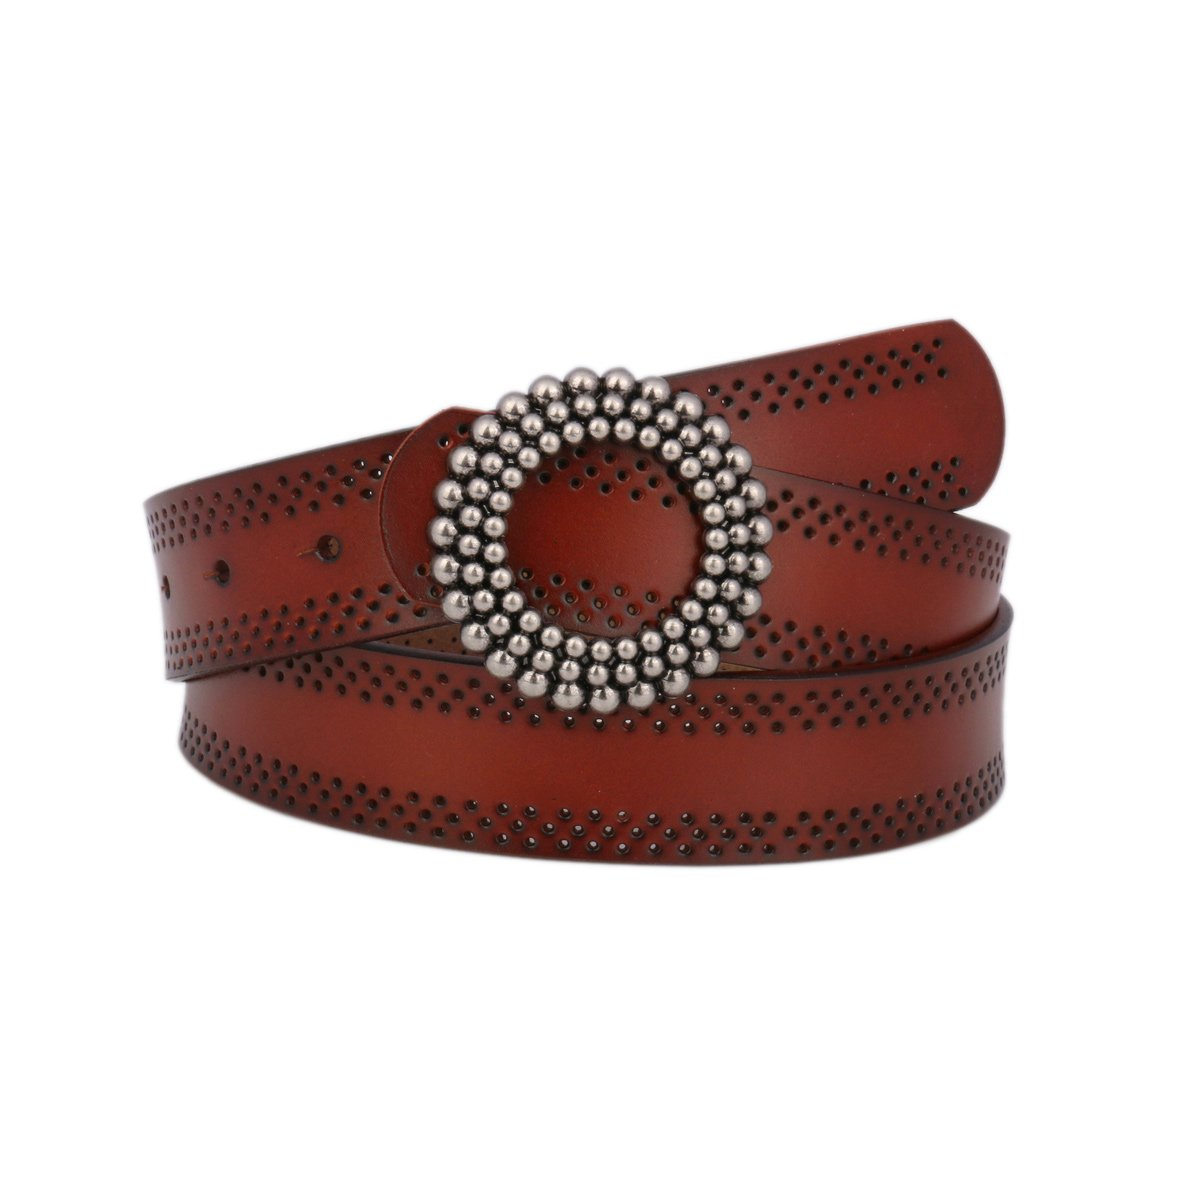 Damara Women's Wide Belt Round Flower Adorn Buckle Genuine Leather Waistband,Brown